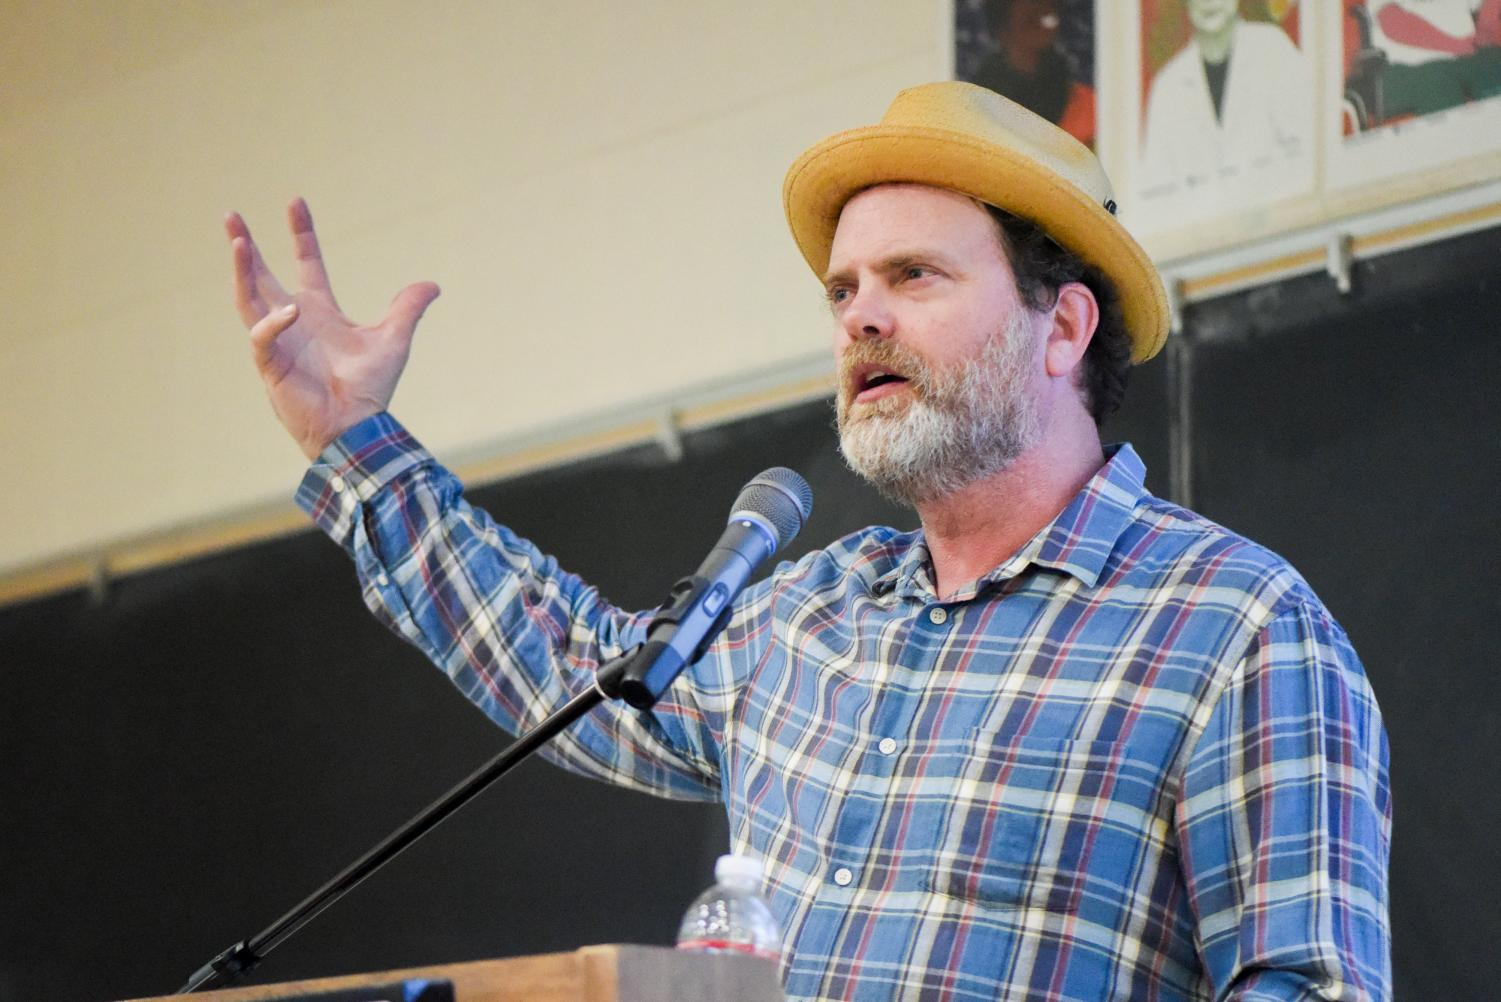 Rainn Wilson had the packed lecture hall laughing throughout his stories from his life, Baha'i faith, and foundation Soul Pancake on Thursday, April 25, 2019, in the Physical Science Room 101 at City College in Santa Barbara, California. Phi Theta Kappa and the Middle East studies department hosted the event.